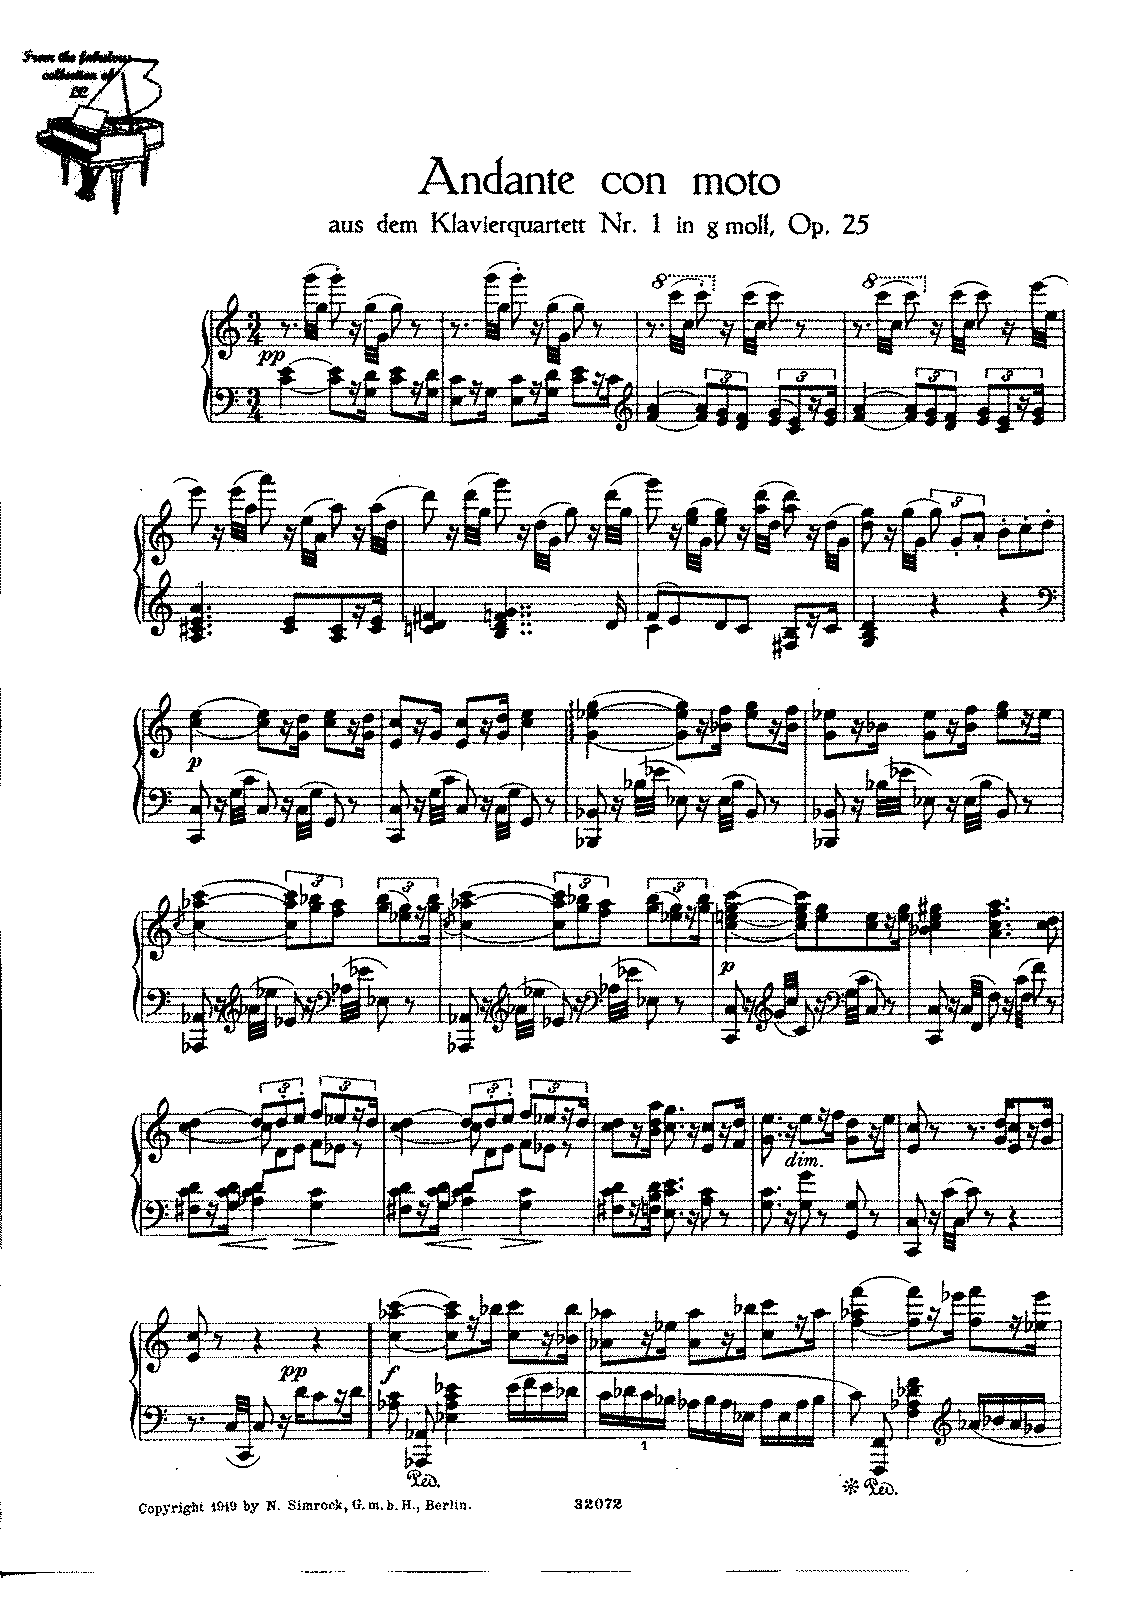 PMLP05562-Brahms - 025 - Piano Quartet g - Theme from Andante (2H Laurischkus) new.pdf